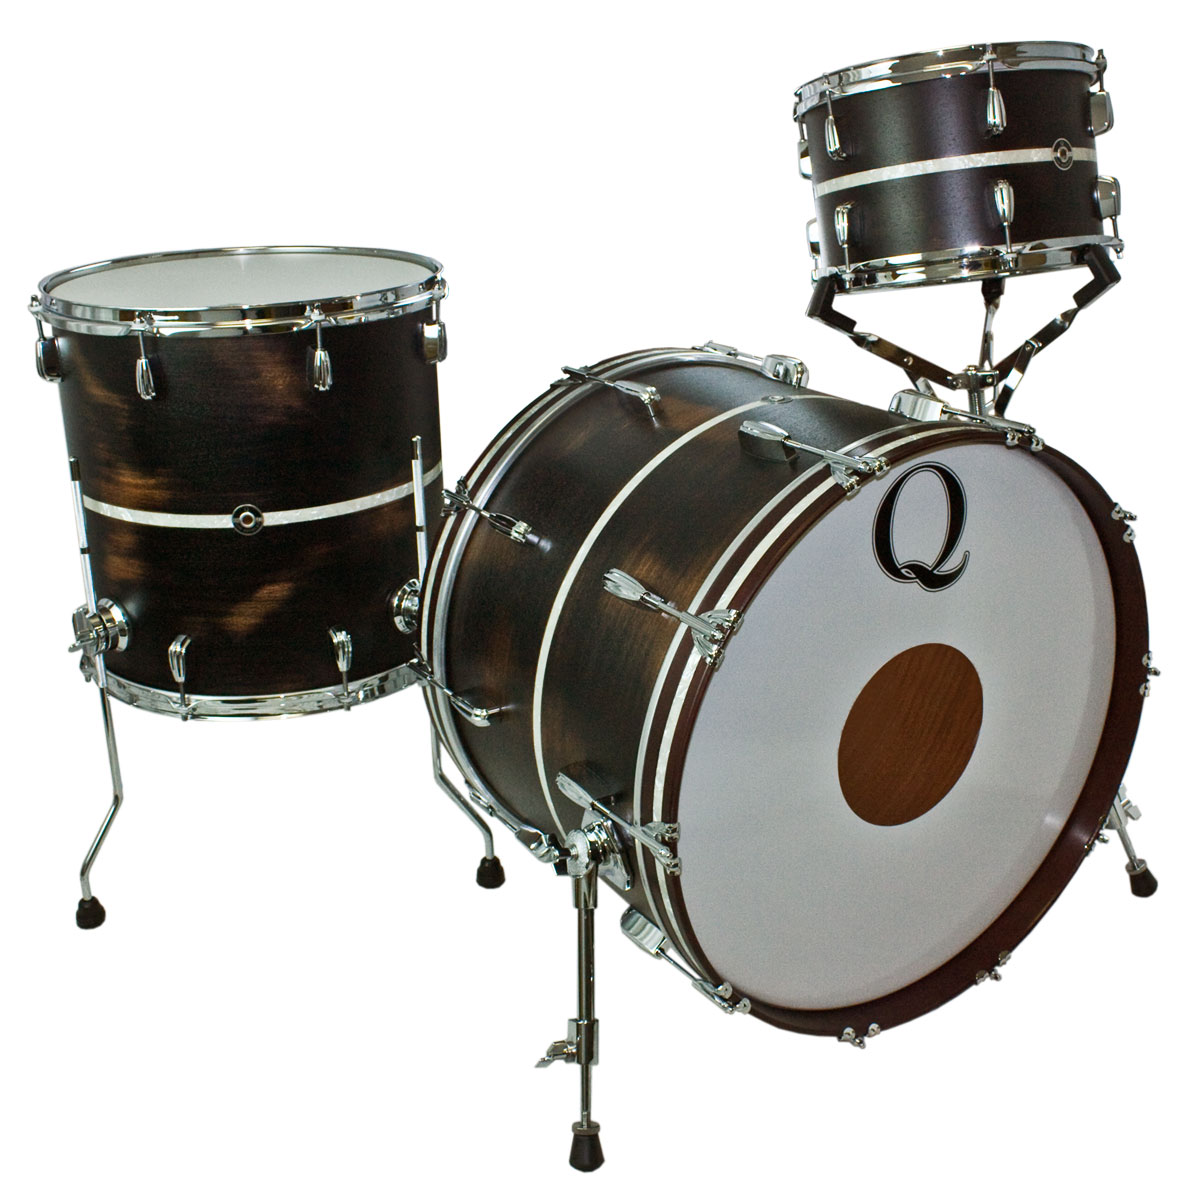 "Q Drum Co. Mahogany/Poplar 3-Piece Drum Set Shell Pack (22"" Bass, 12/16"" Toms) in Distressed Black Satin/Antique White Pearl Inlay"